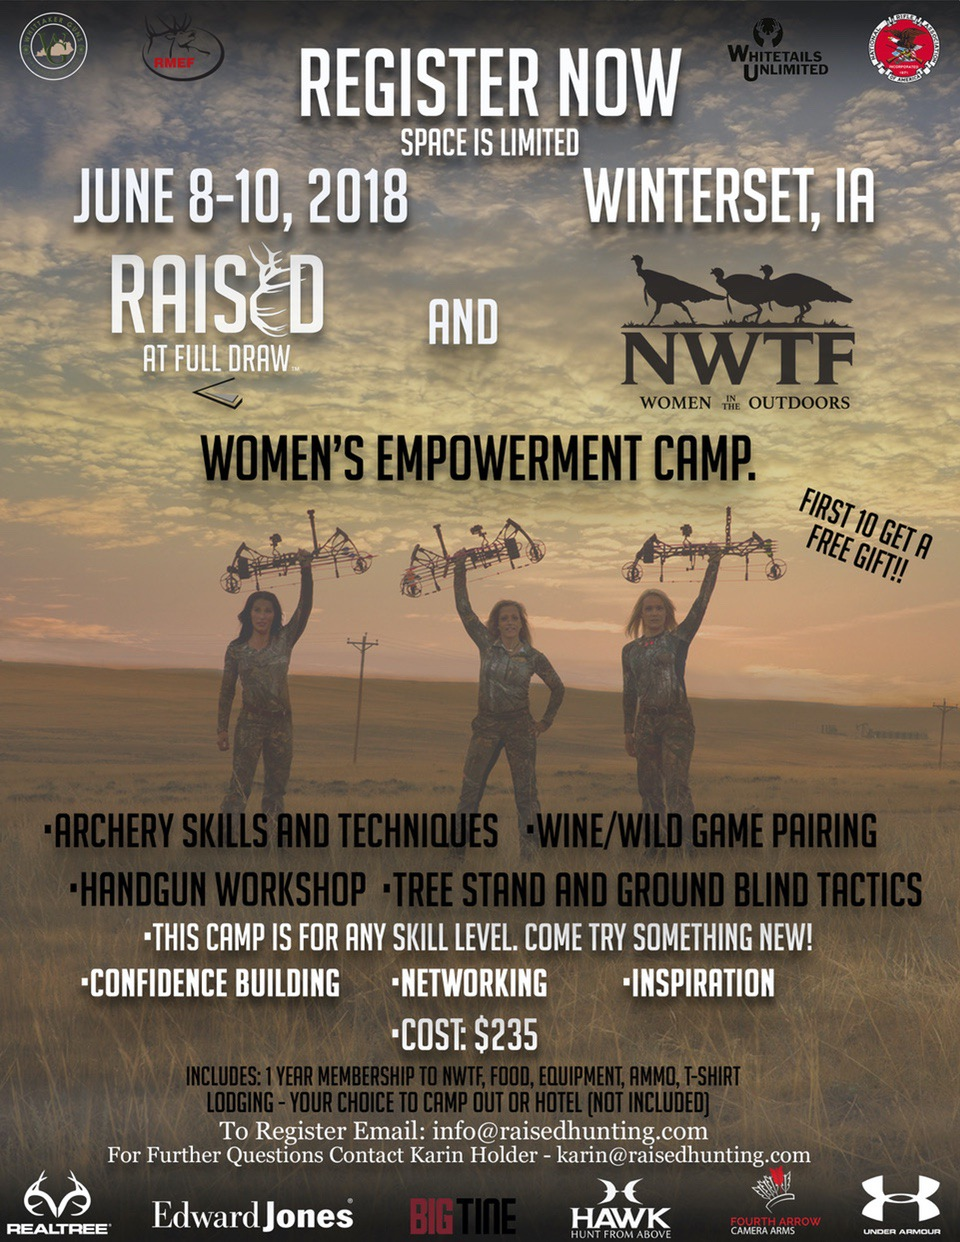 Empowerment Camp Raised At Full Draw and NWTF Women's Empowerment Camp